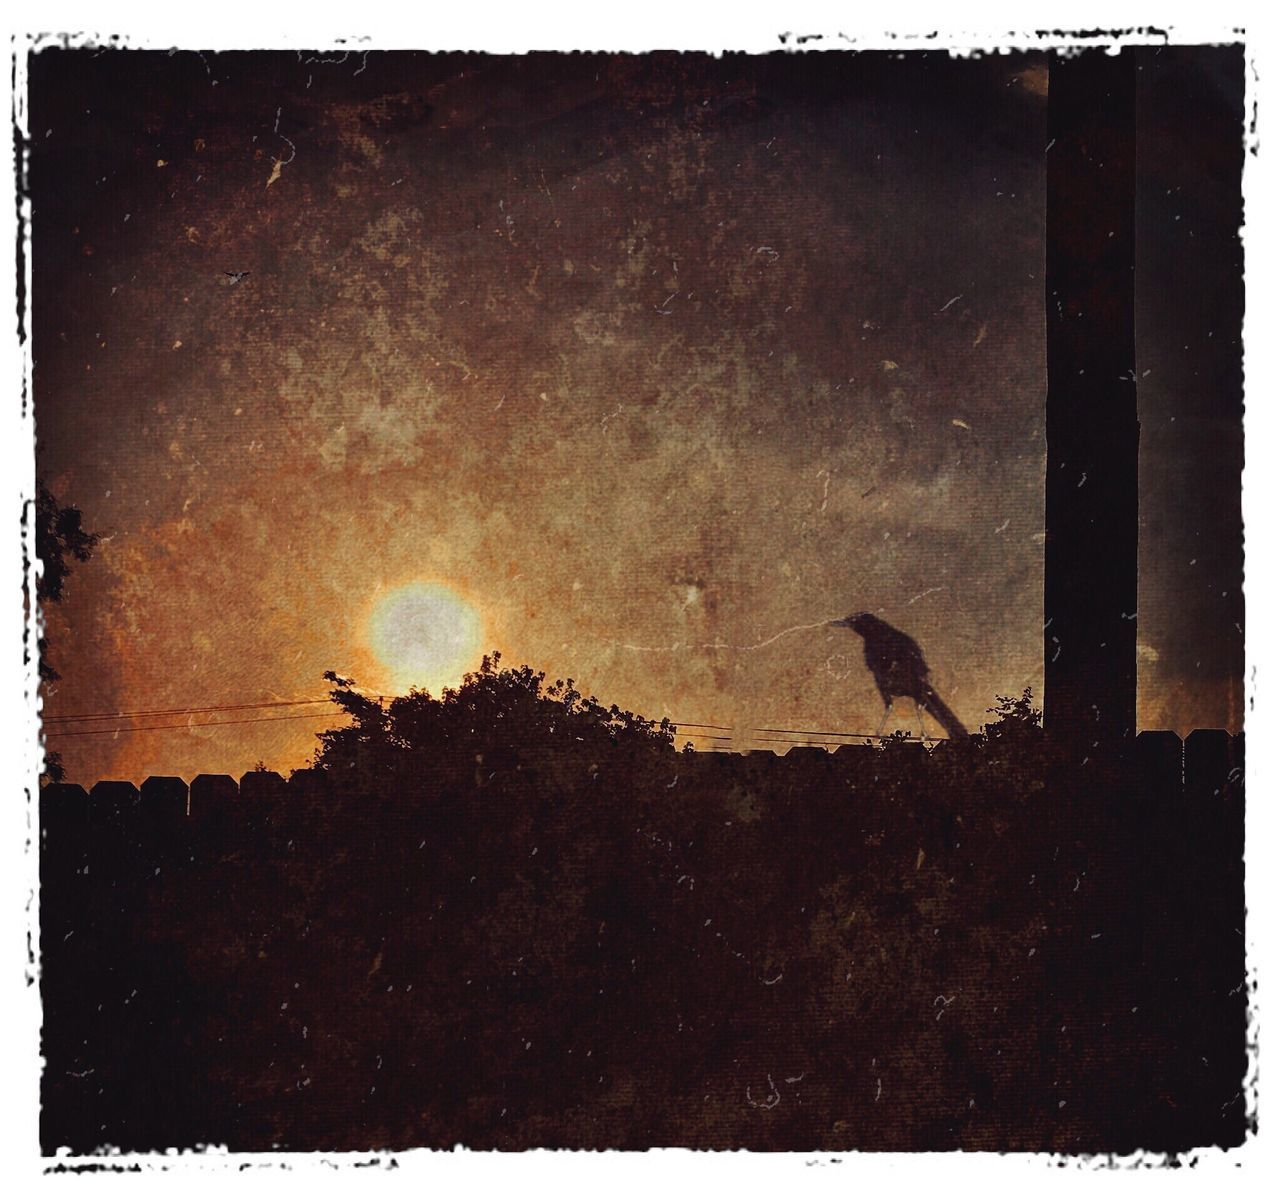 silhouette, sunset, animal themes, animals in the wild, nature, no people, outdoors, bird, tree, night, sky, beauty in nature, scenics, astronomy, galaxy